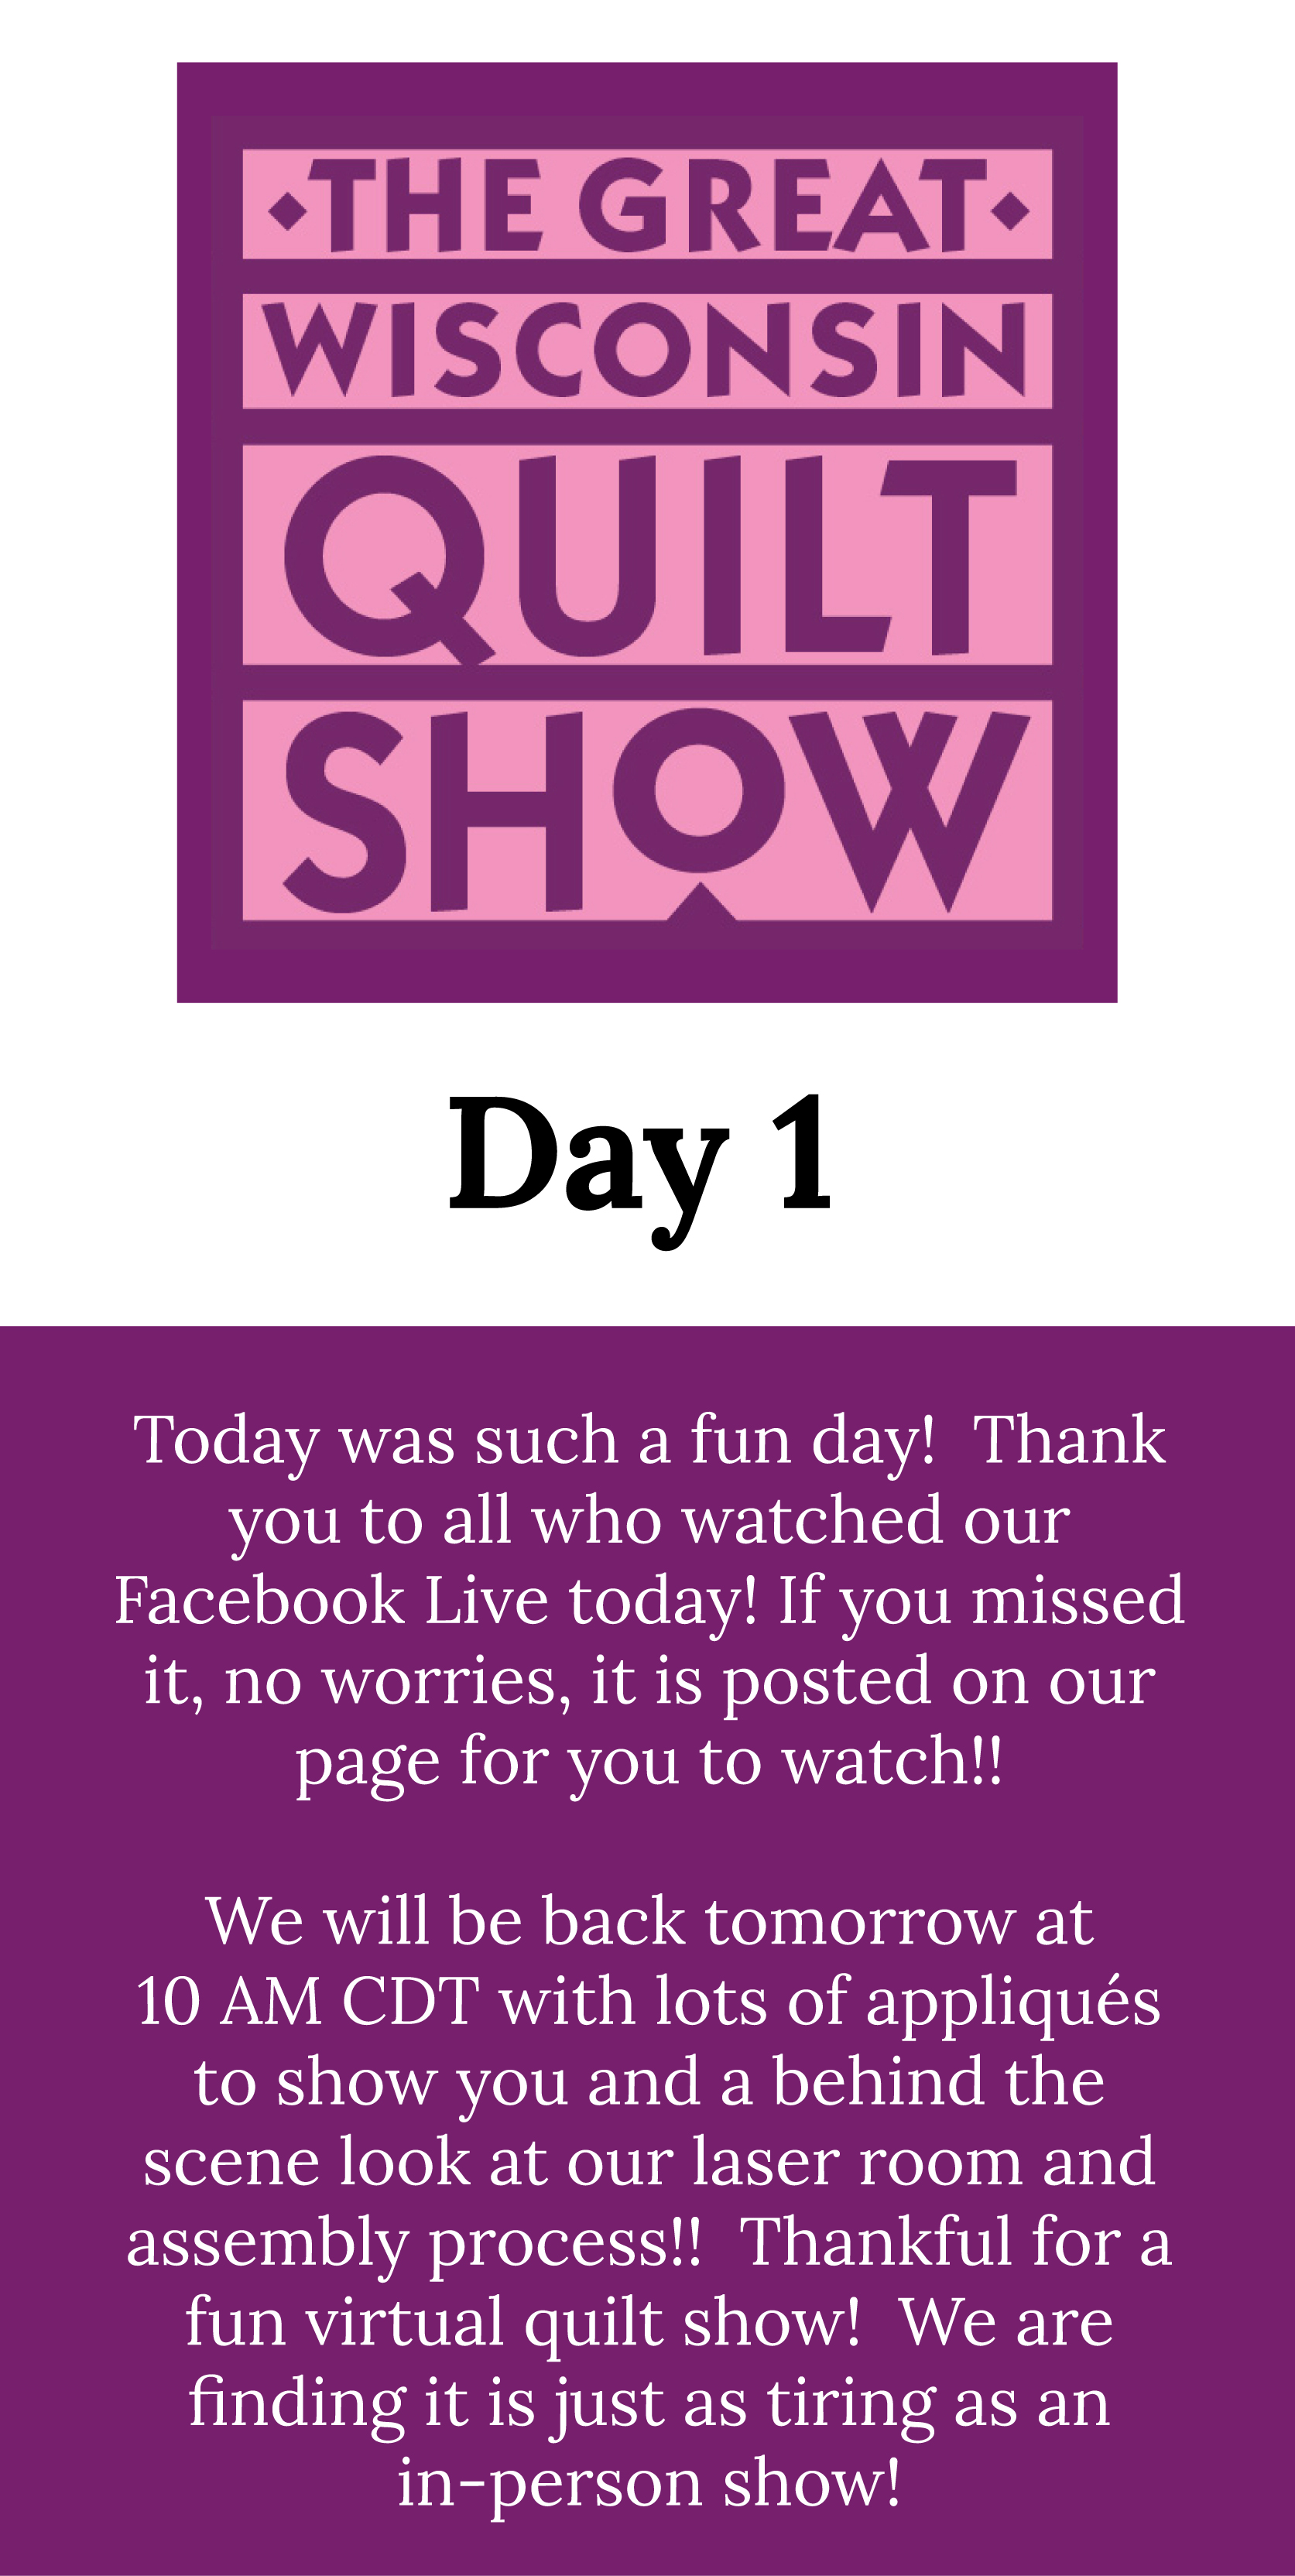 Today was such a fun day!  Thank you to all who watched our Facebook Live today! If you missed it, no worries, it is posted on our page for you to watch!!  We will be back tomorrow at  10 AM CDT with lots of appliqués to show you and a behind the scene look at our laser room and assembly process!!  Thankful for a fun virtual quilt show!  We are finding it is just as tiring as an in-person show!